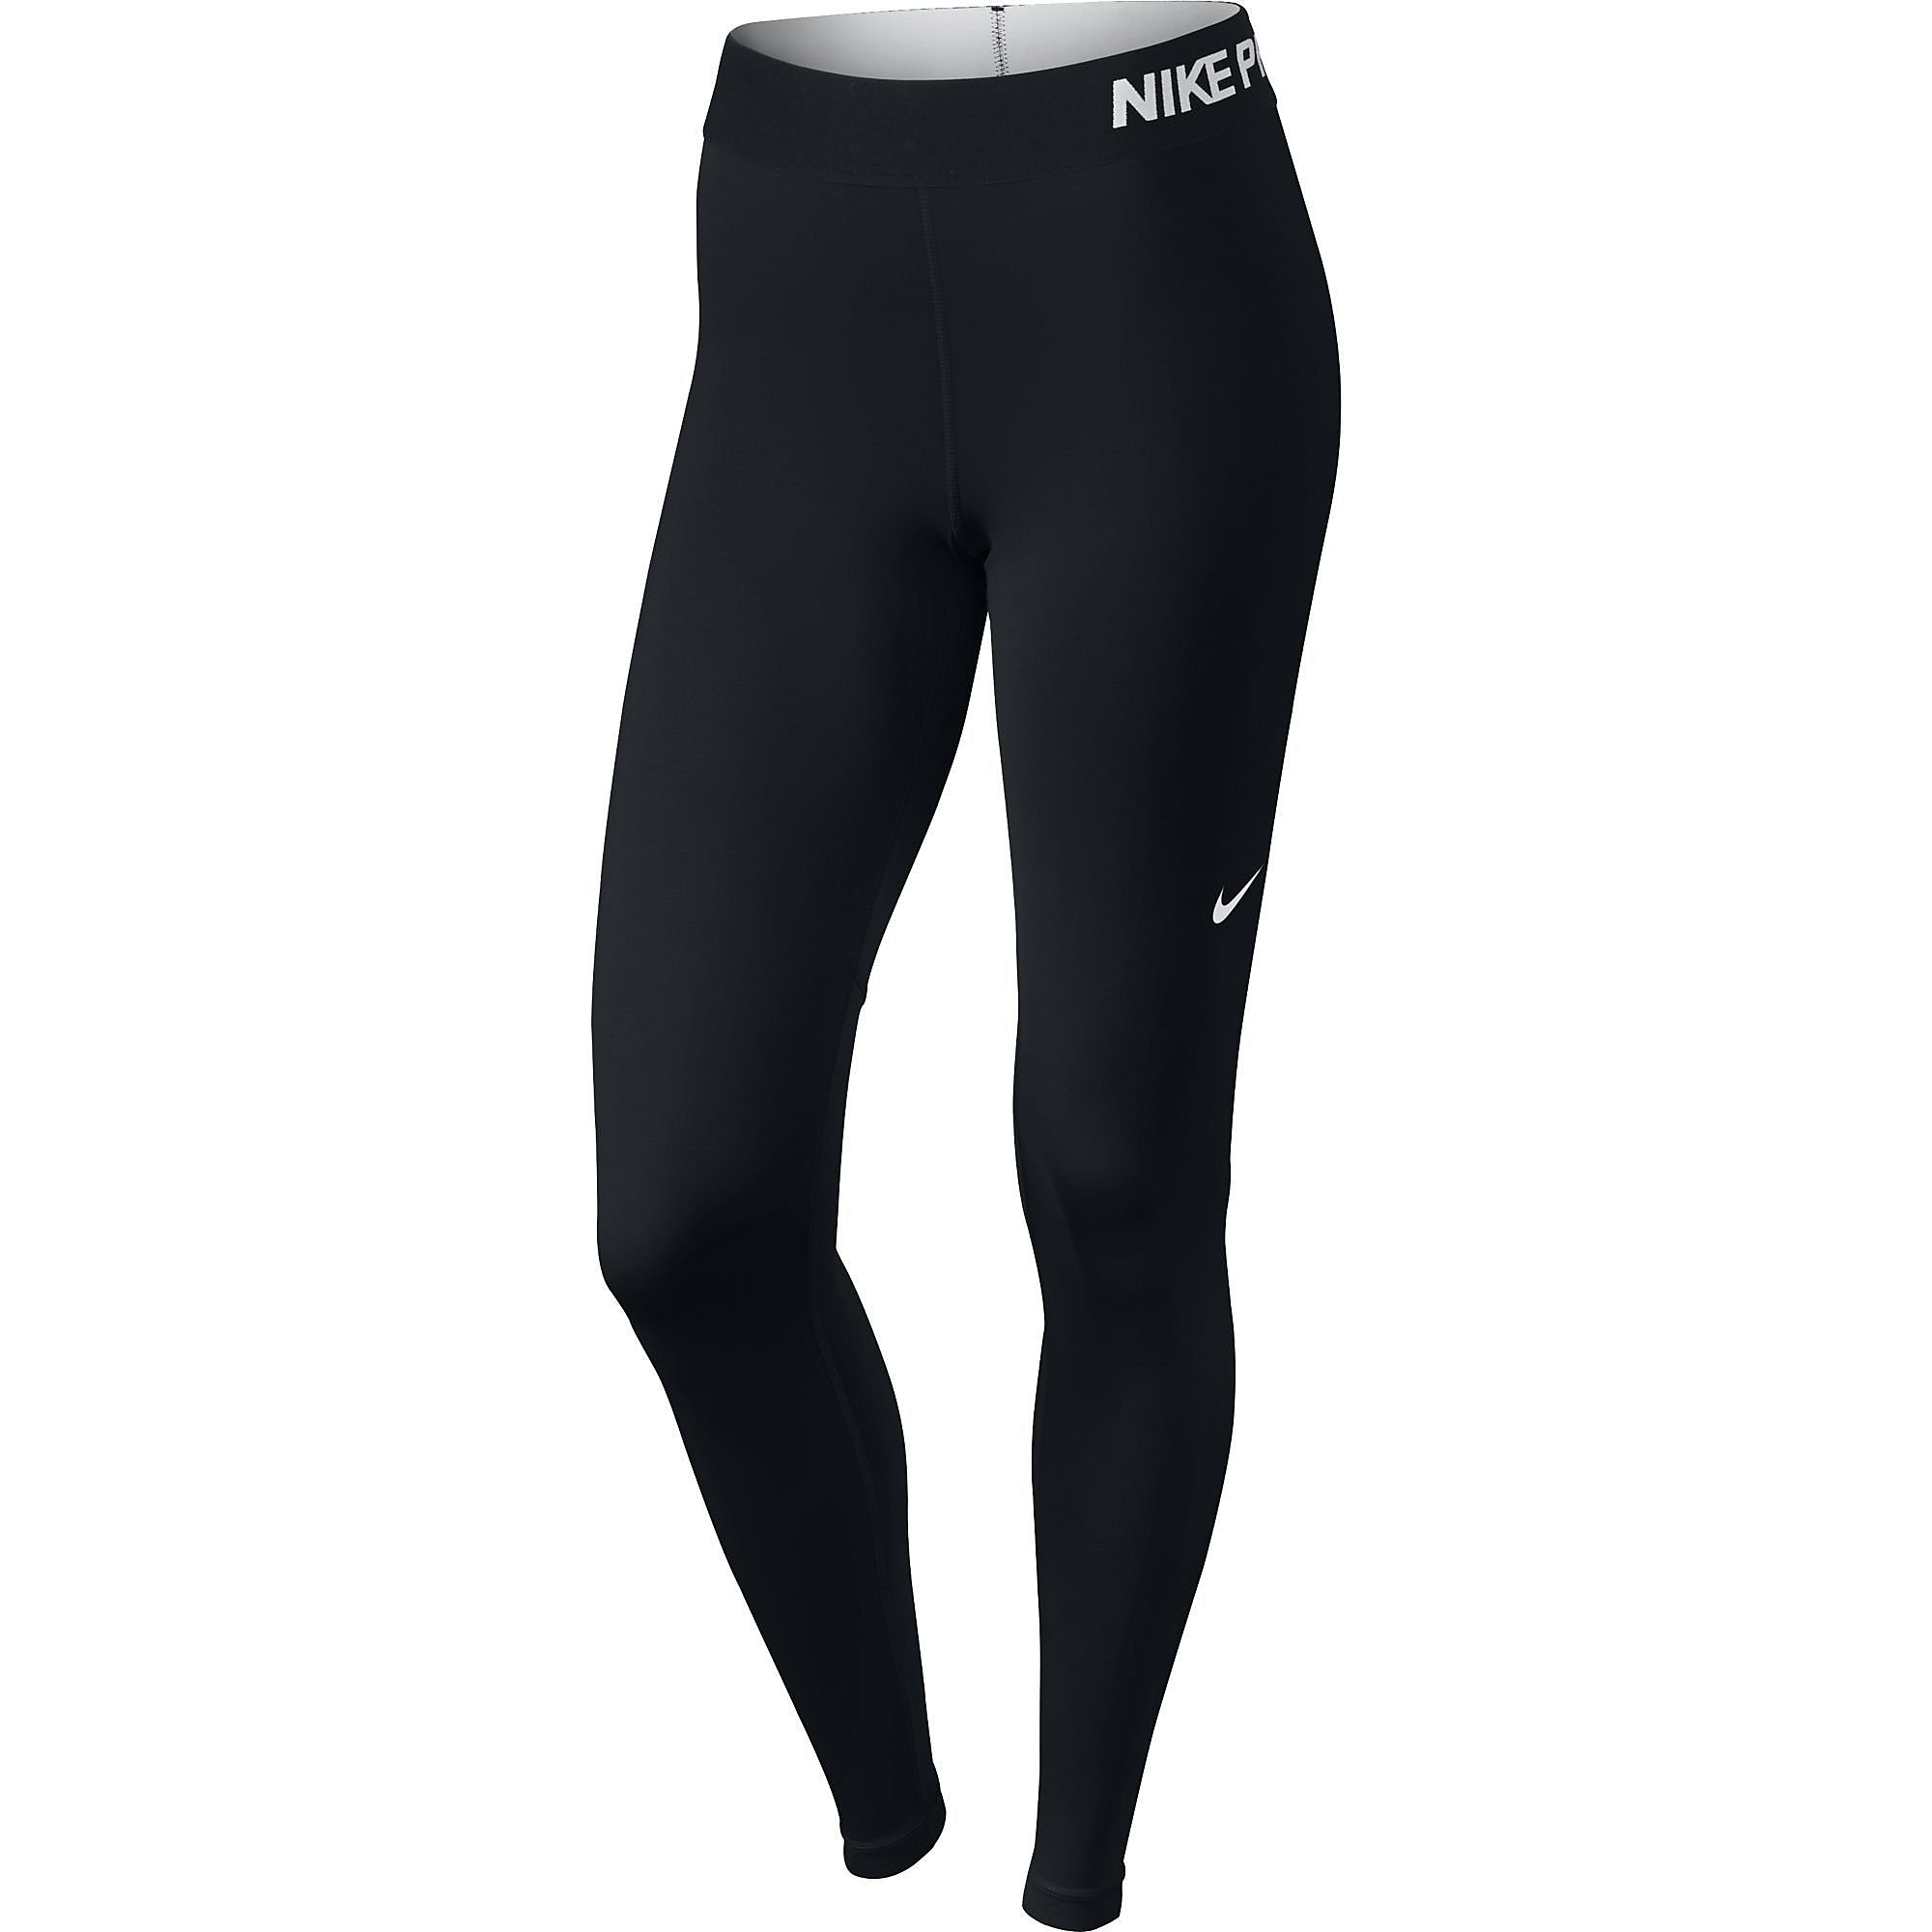 NIKE PRO COOL TIGHT ZWART DAMES